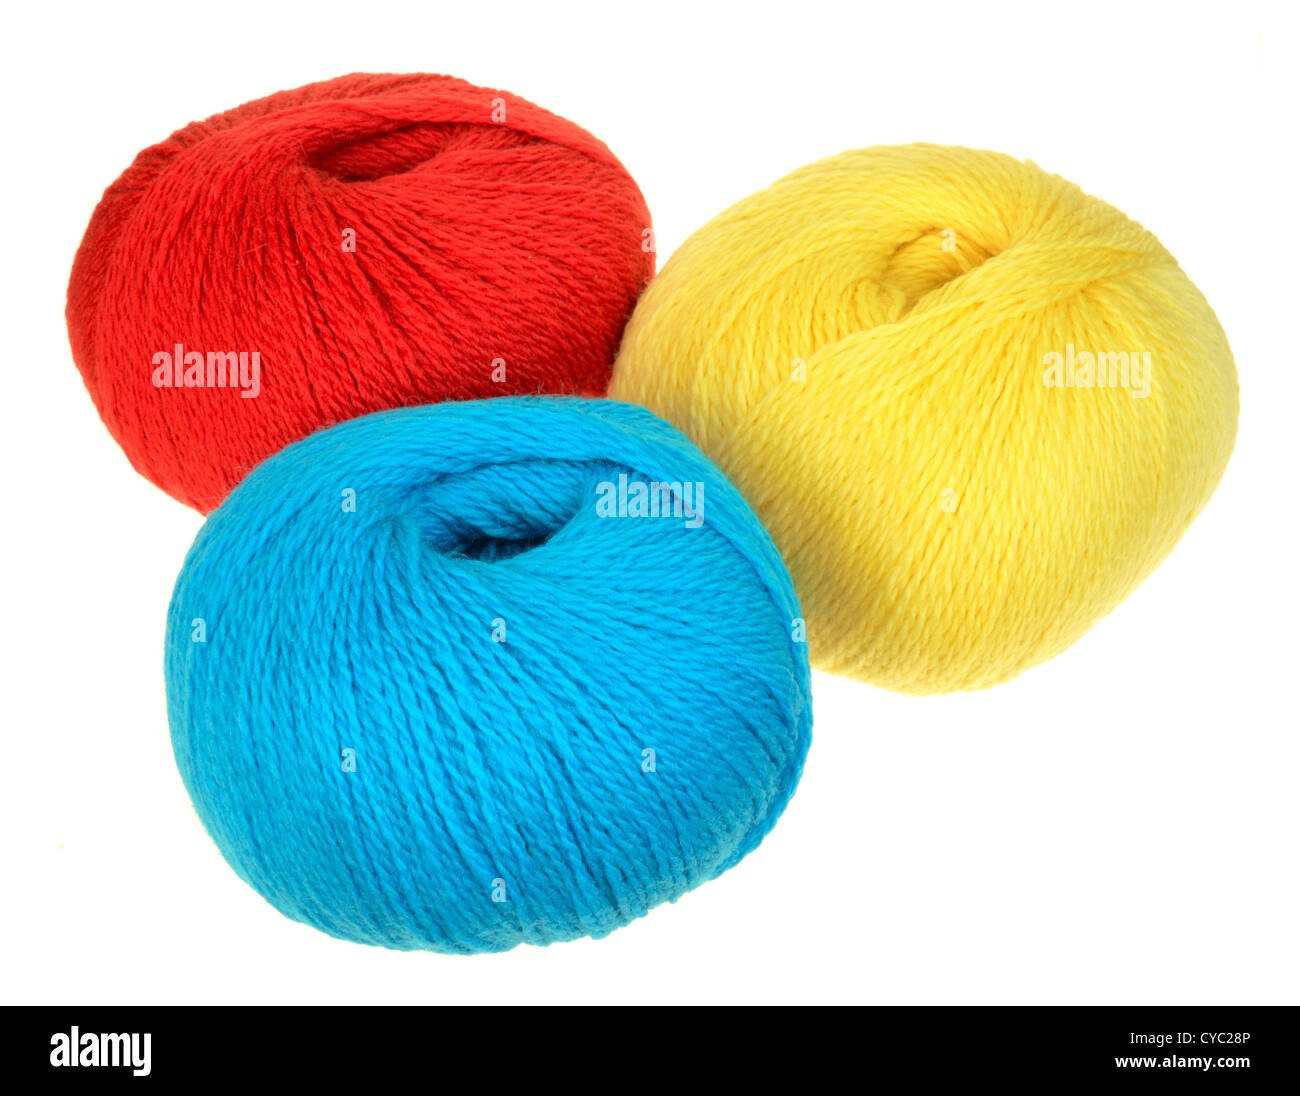 skeins of peruvian highland wool yarn in primary colors red, blue, yellow - Stock Image